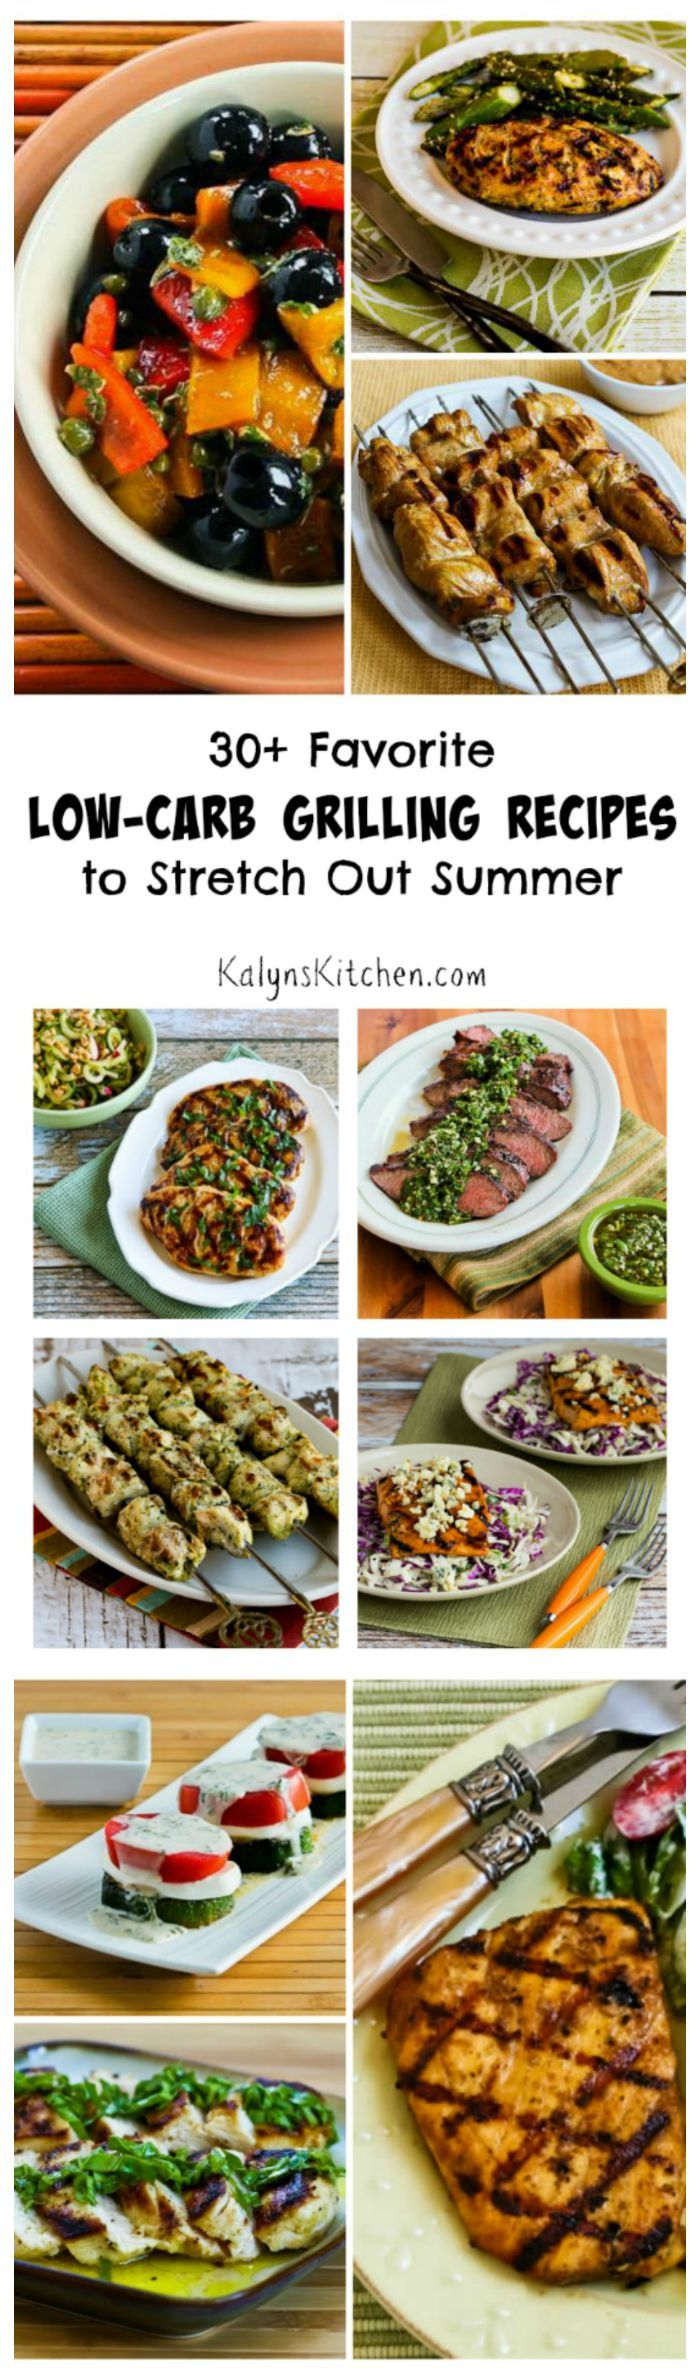 Even after Labor Day there are lots of warm evenings for grilling, so here are 30+ Low-Carb Grilling Recipes to stretch out Summer. All these recipes are low-carb and gluten-free and most are Paleo or can be with minor changes. [from KalynsKitchen.com]